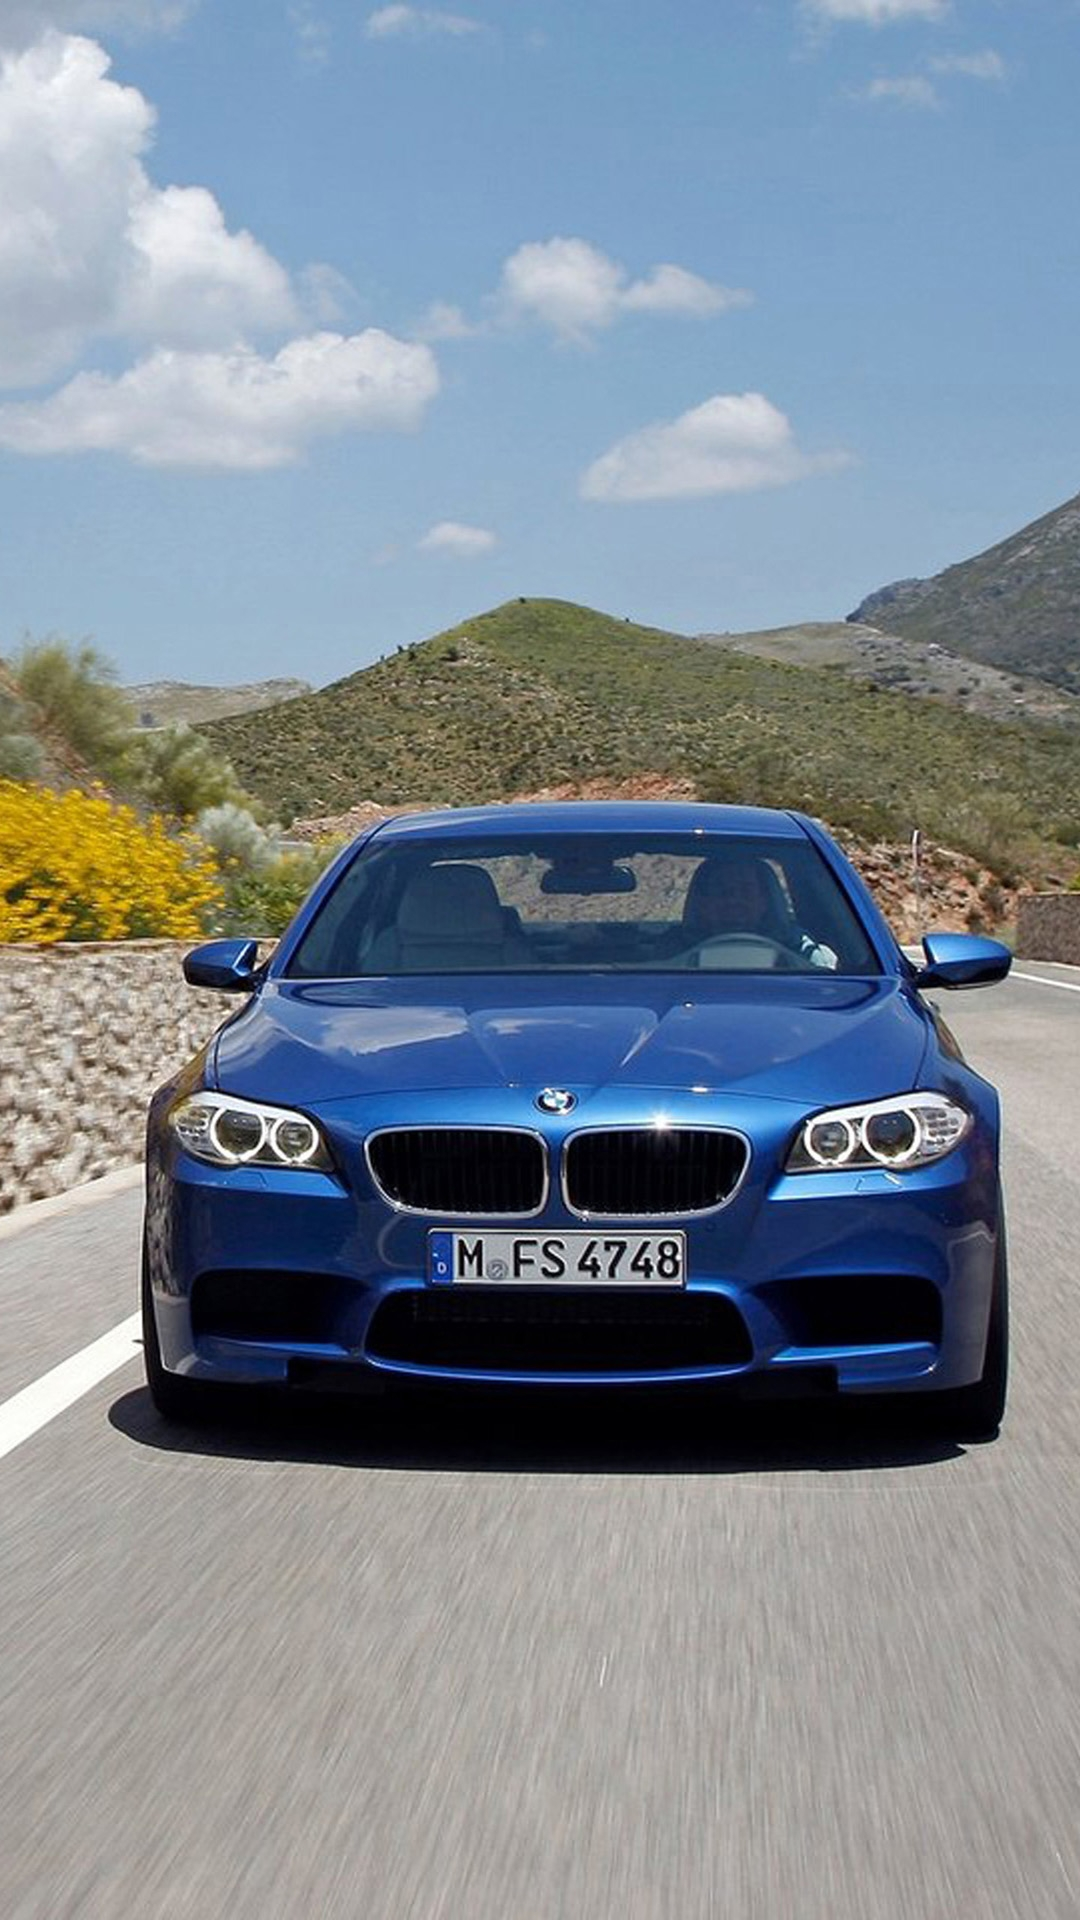 Topic For Bmw M5 Wallpaper Iphone 5 : Bmw M5 E60 Iphone ...